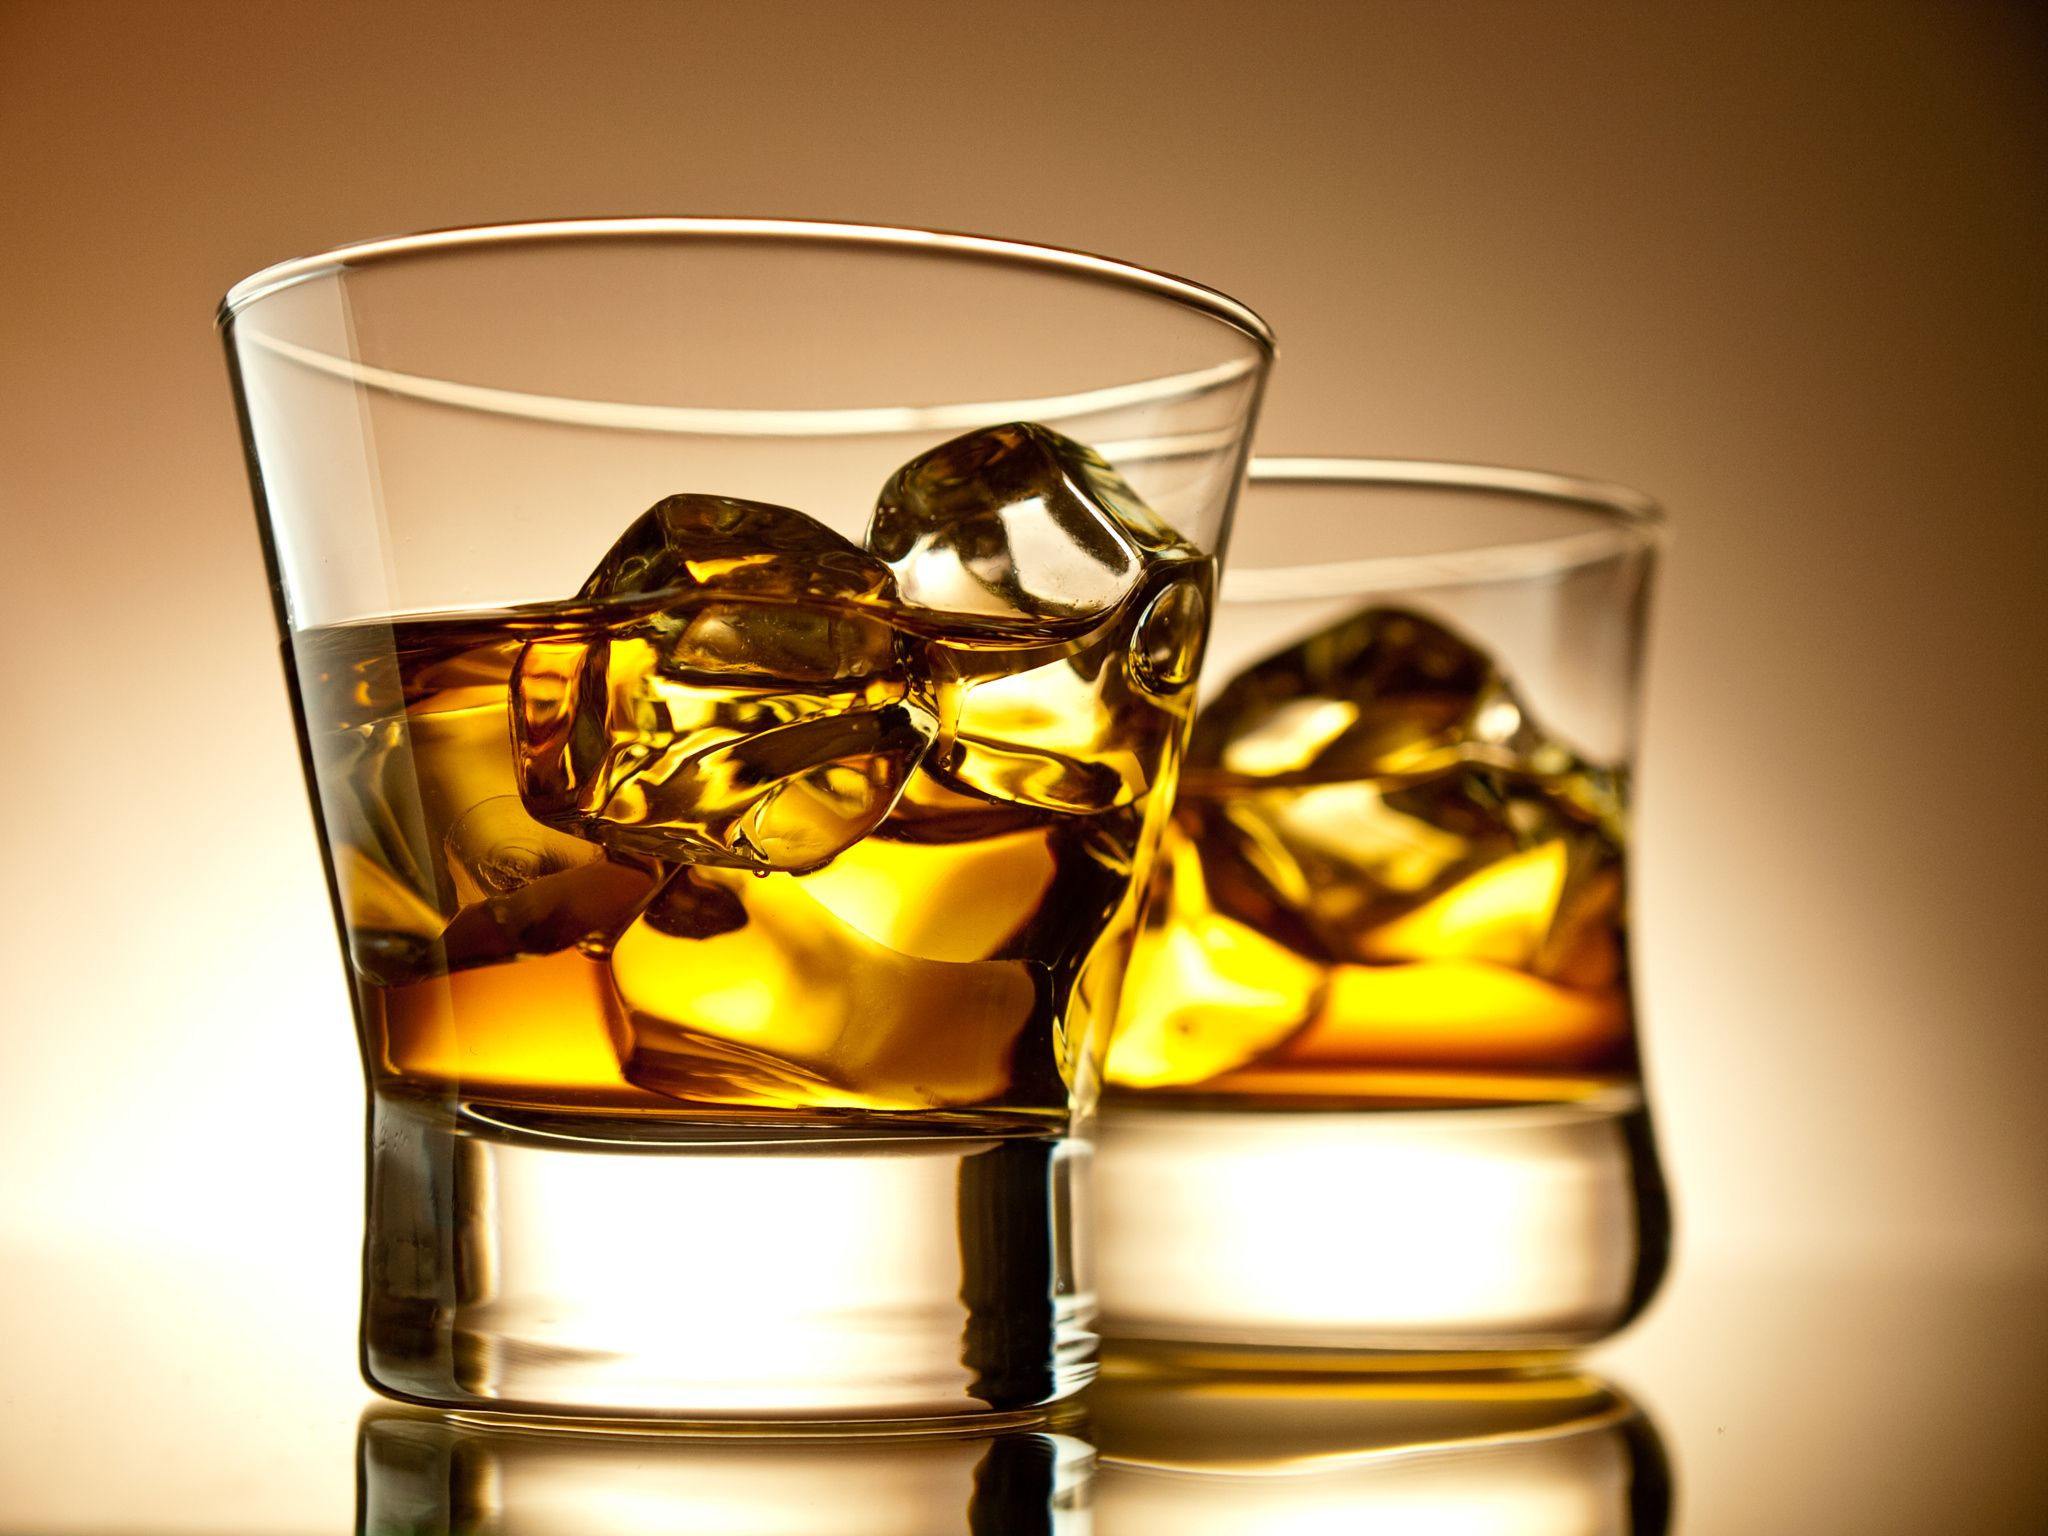 Two glasses of whisky by Alexey Lysenko on 500px